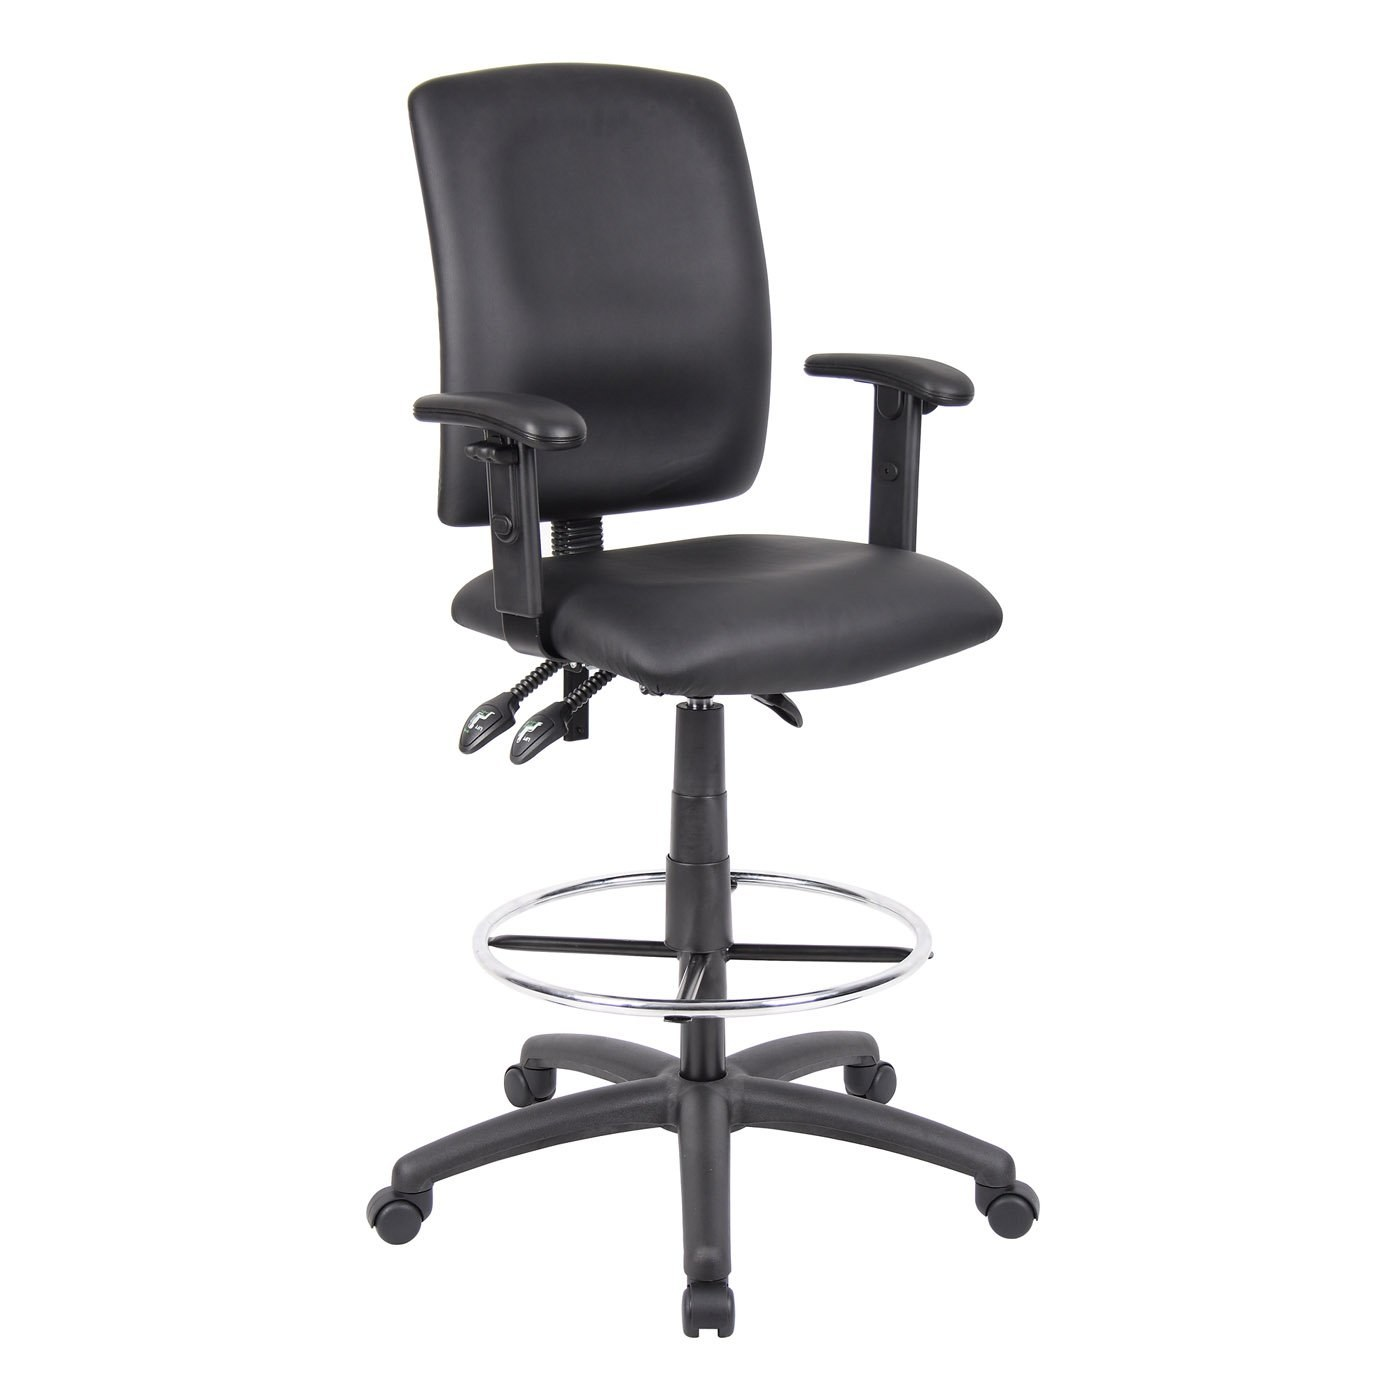 ergonomic drafting chair with arms design dining stool adjustable black